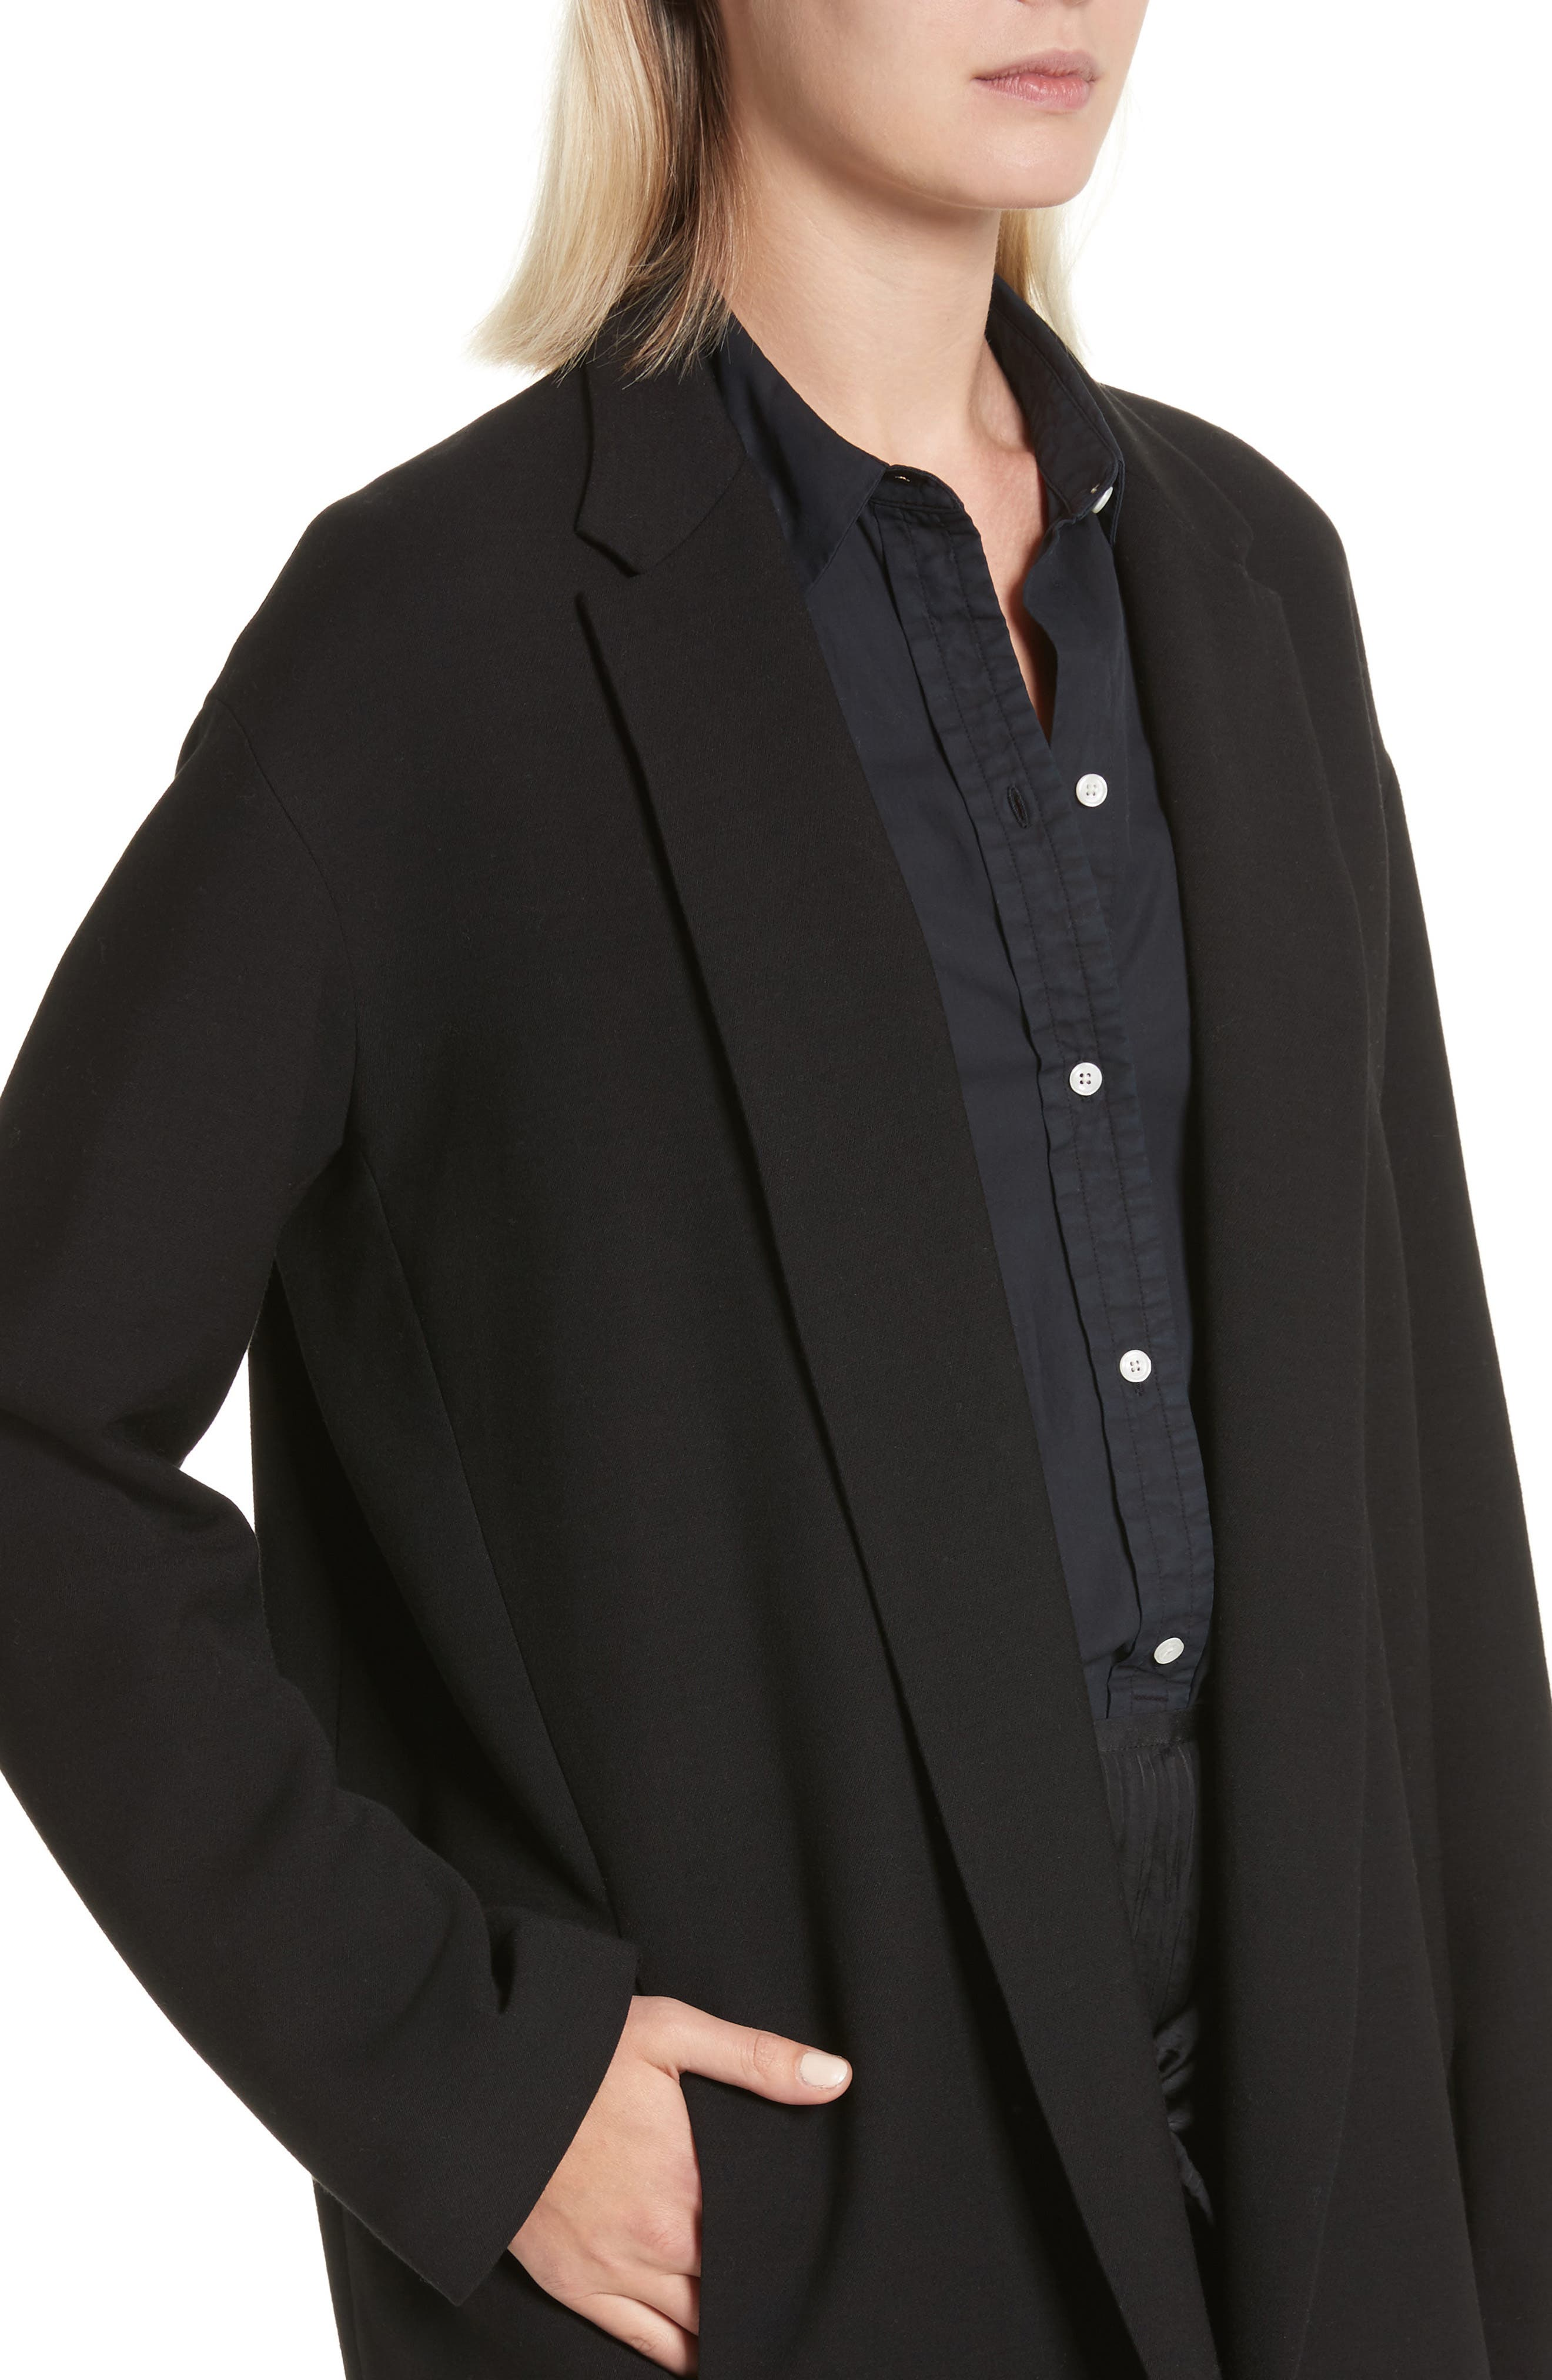 Open Front Blazer Coat,                             Alternate thumbnail 4, color,                             Black